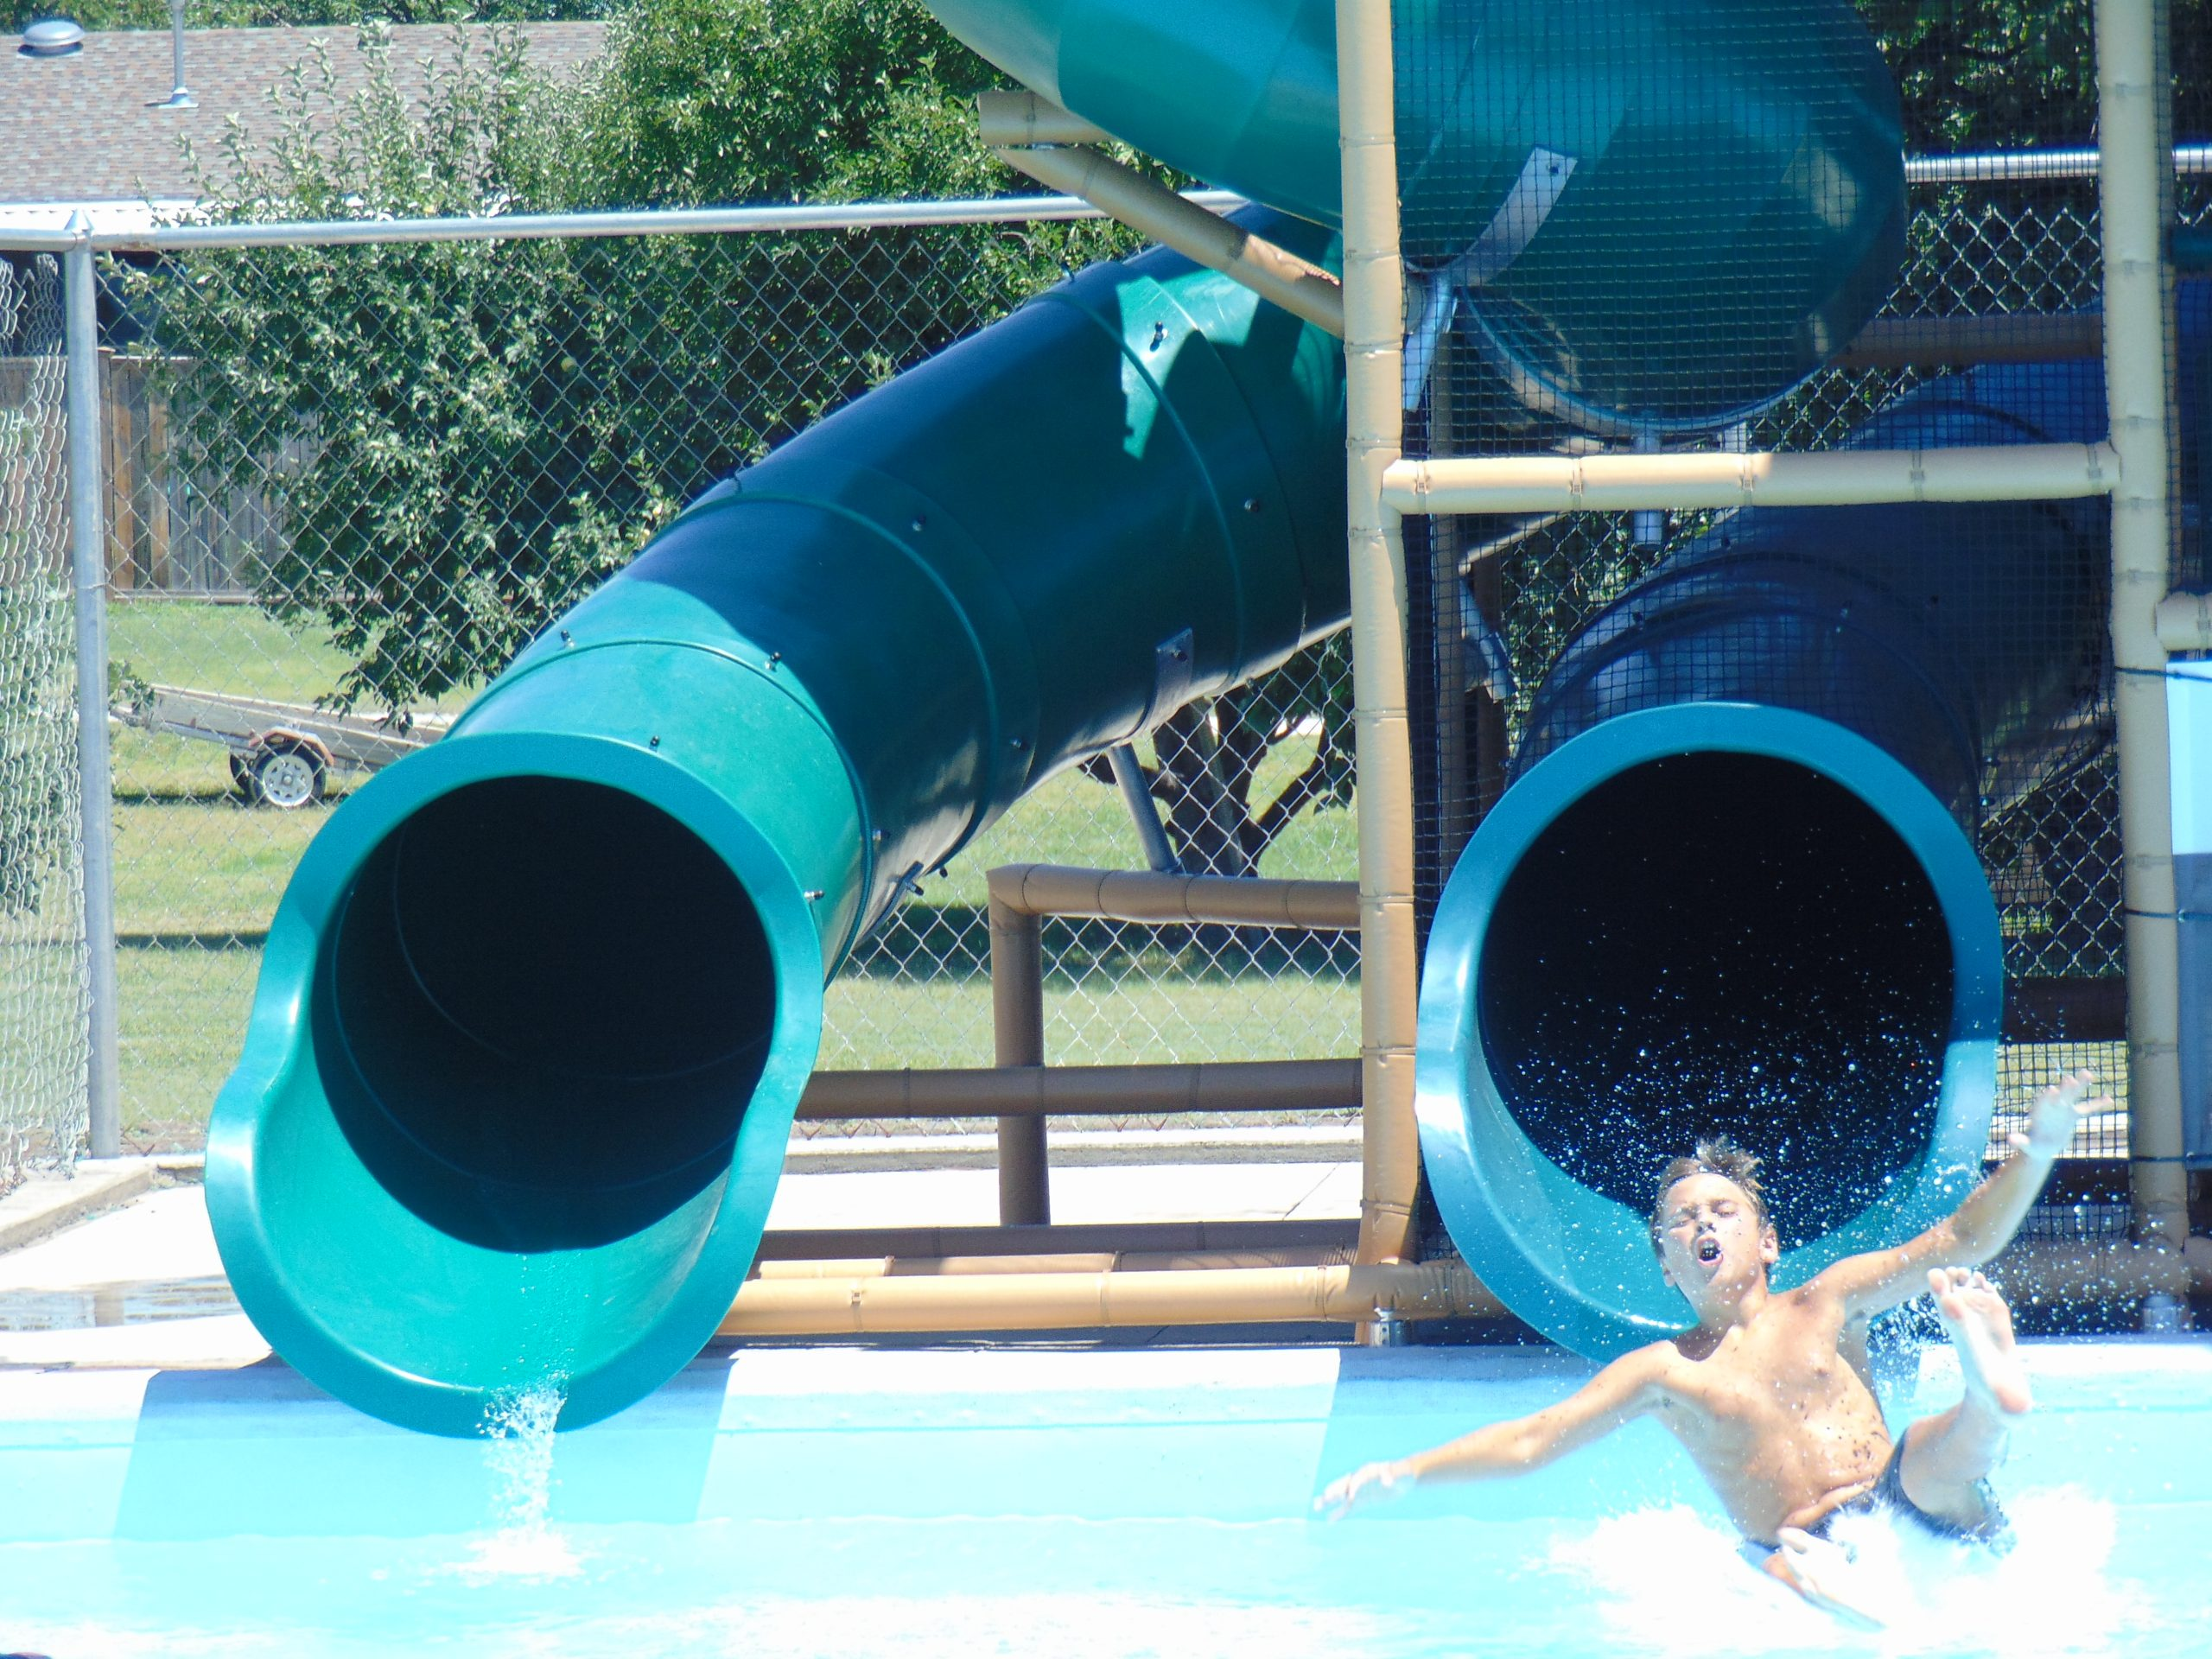 Dual slide splash